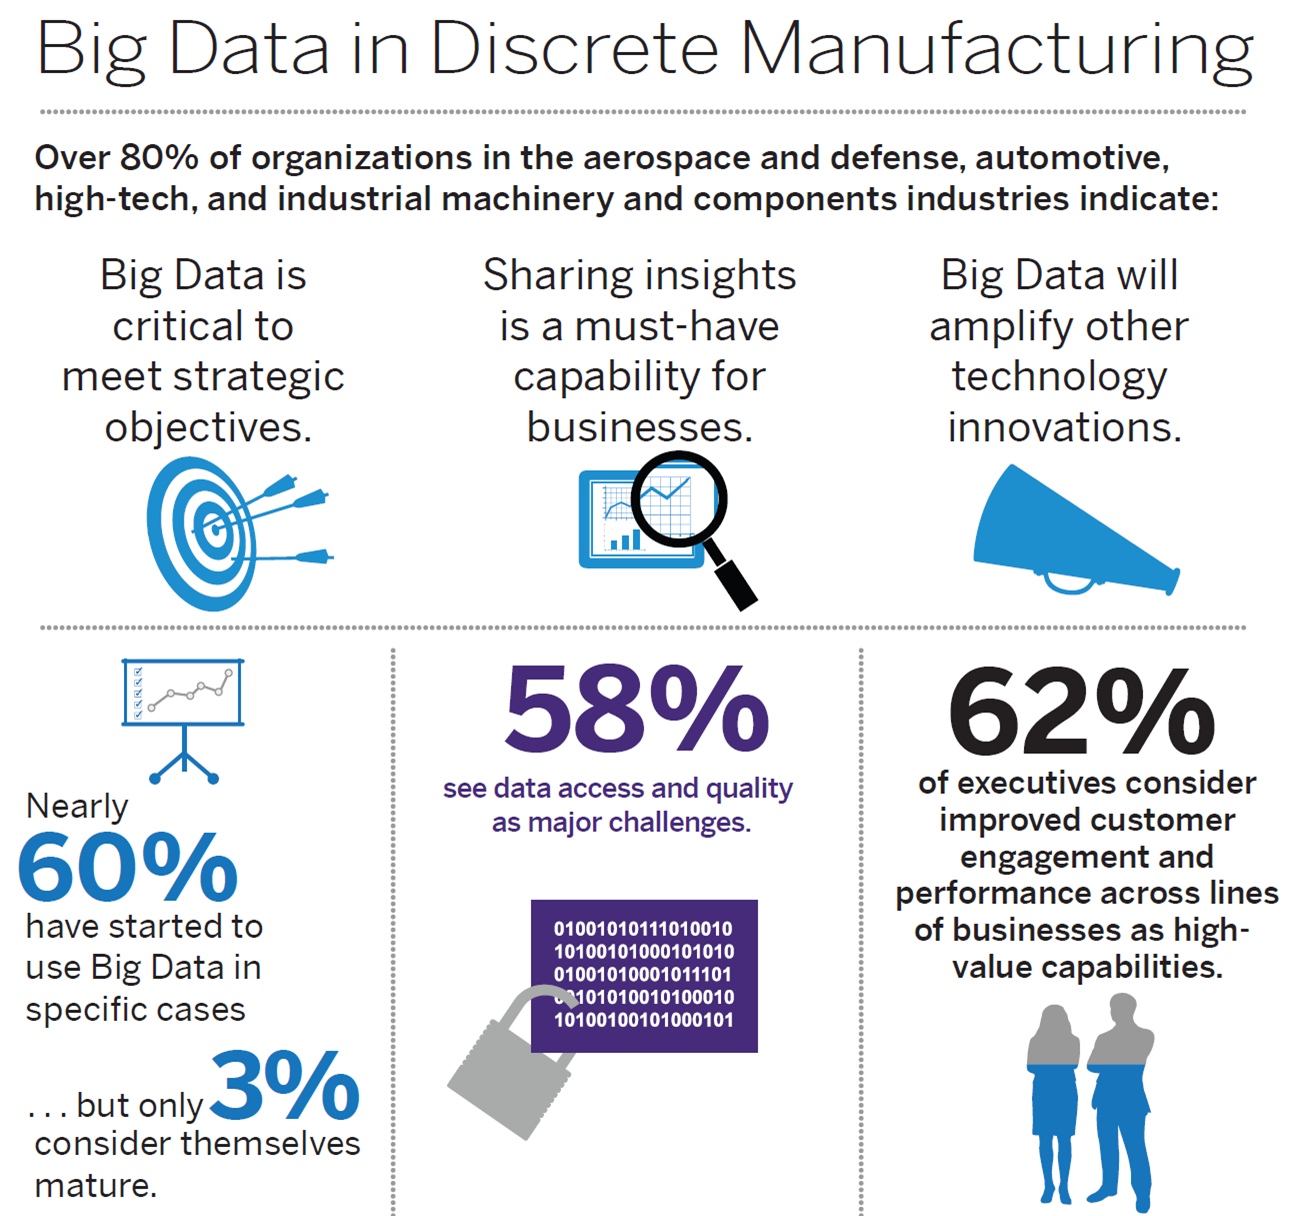 Big-Data-Discrete-Industries-SAP-Infographic.png